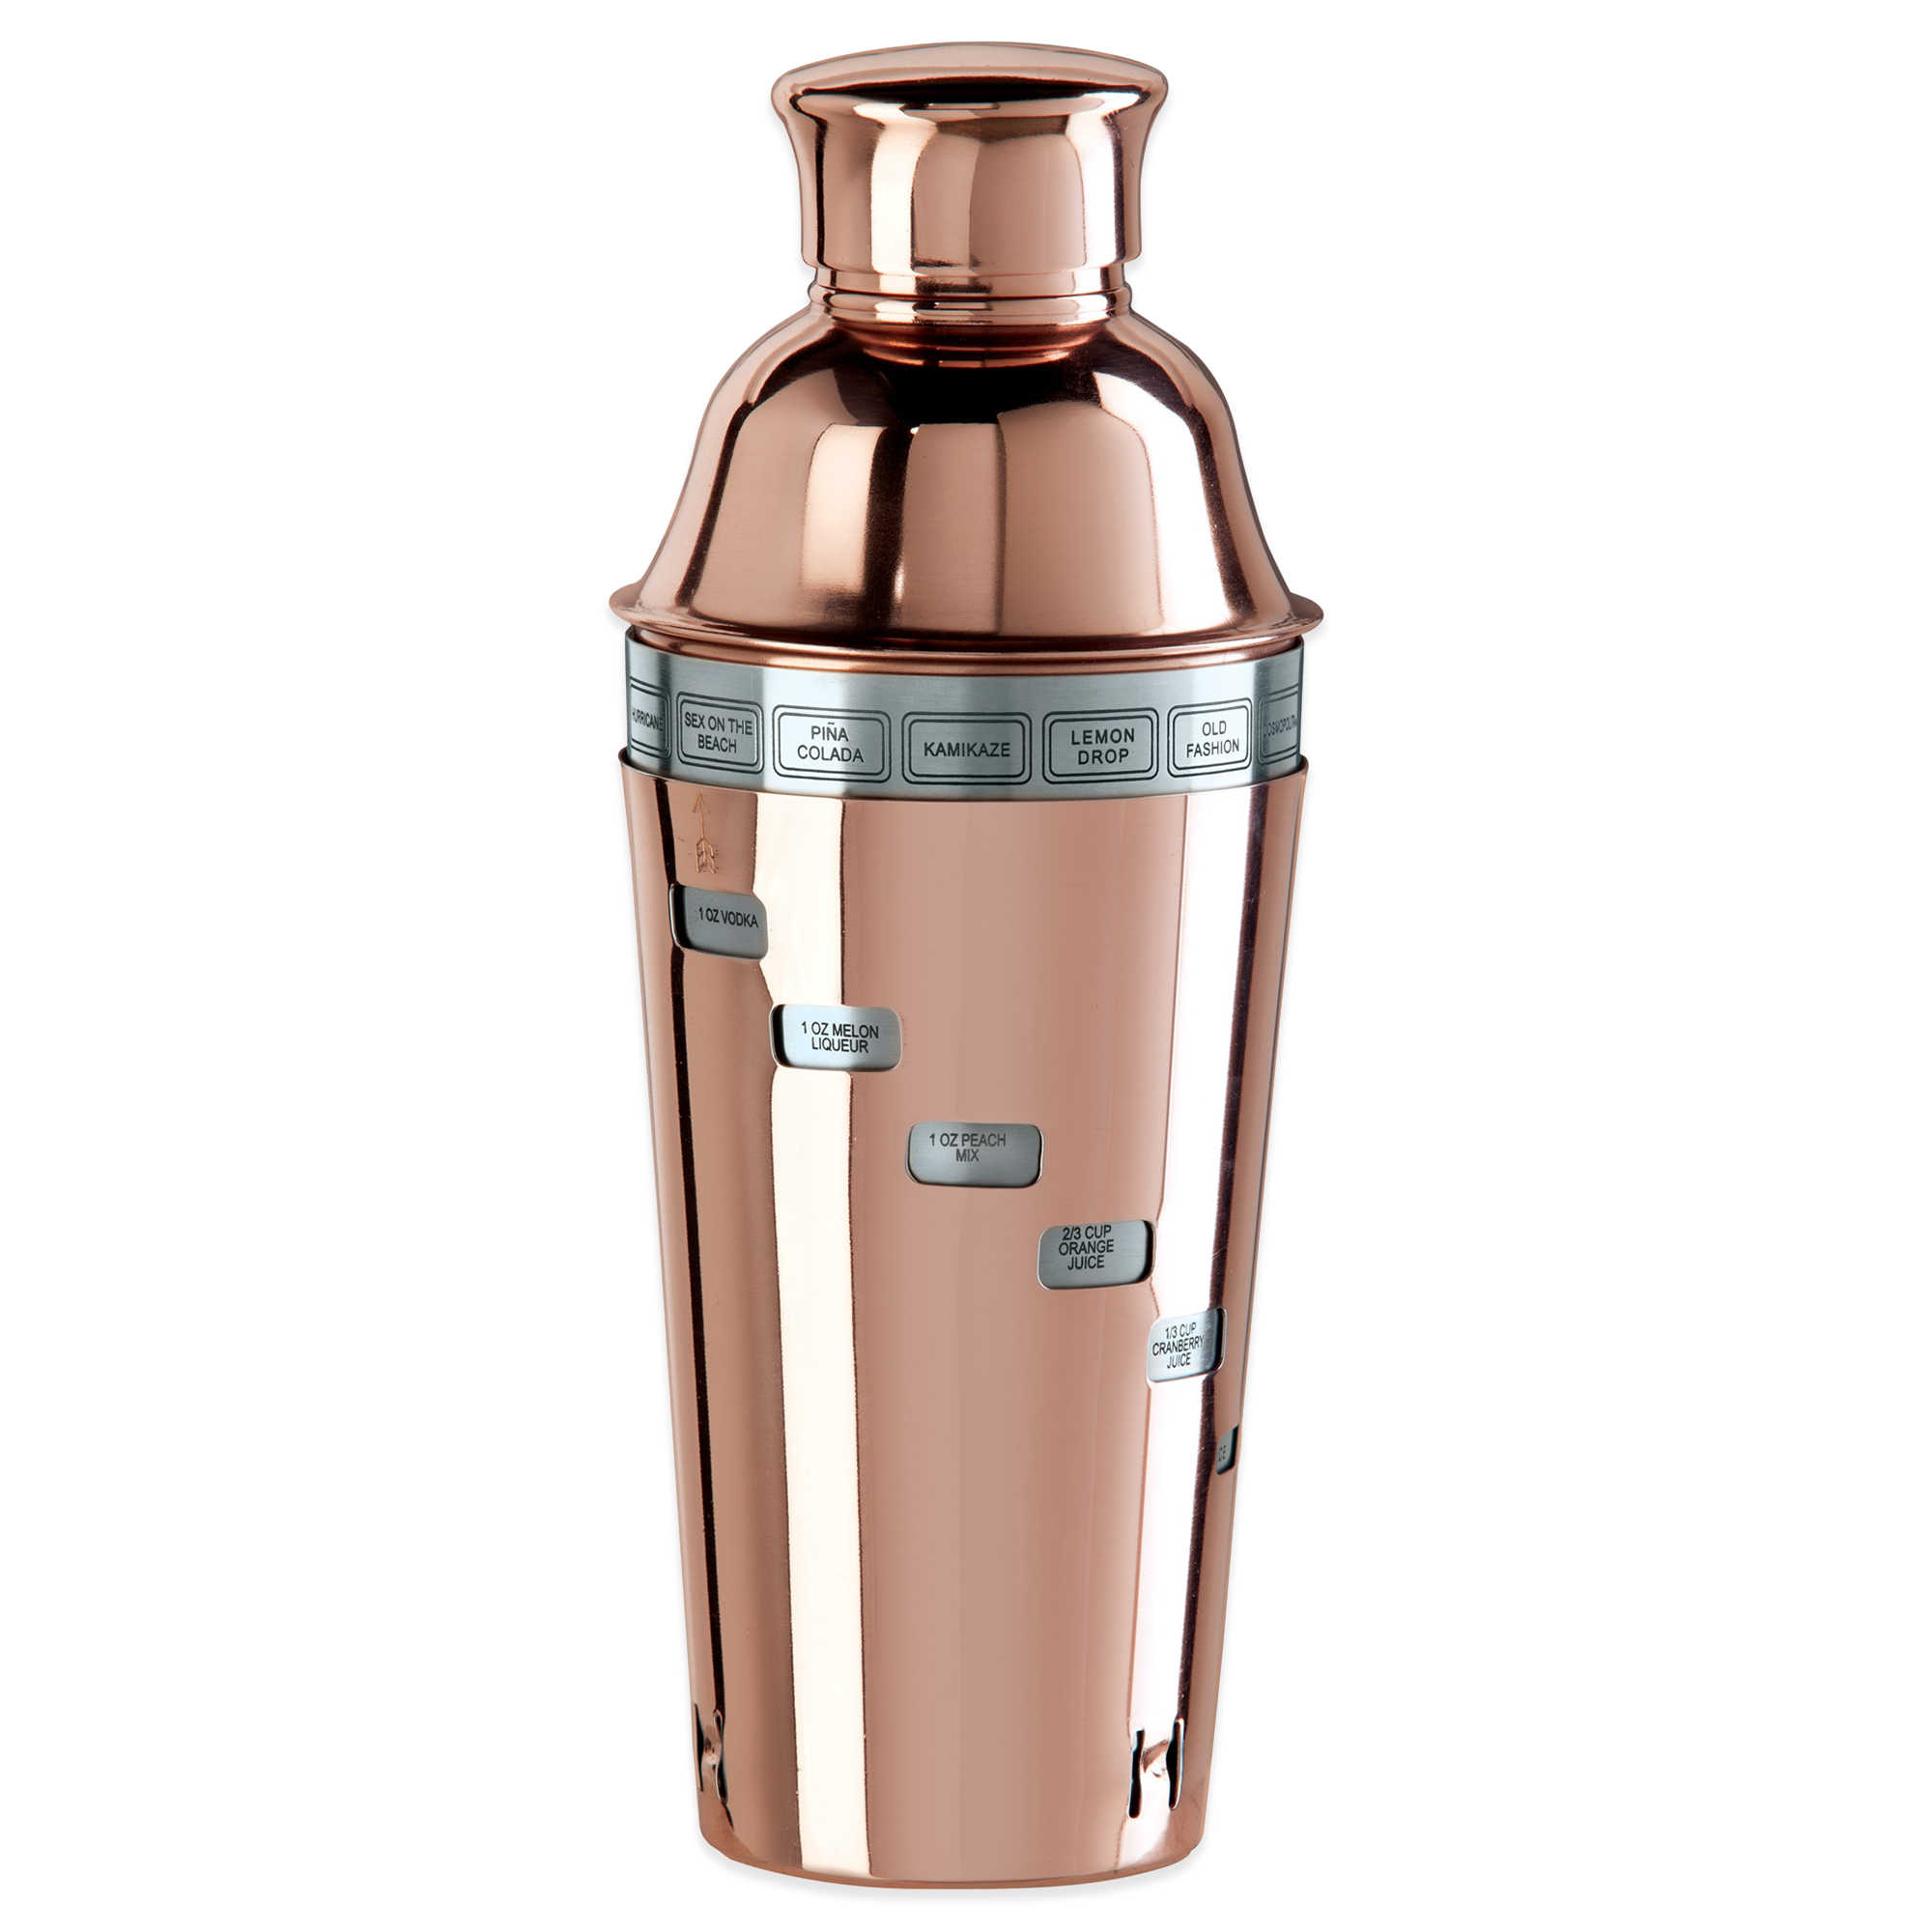 Oggi: Copper Plated Dial A Drink Cocktail Shaker